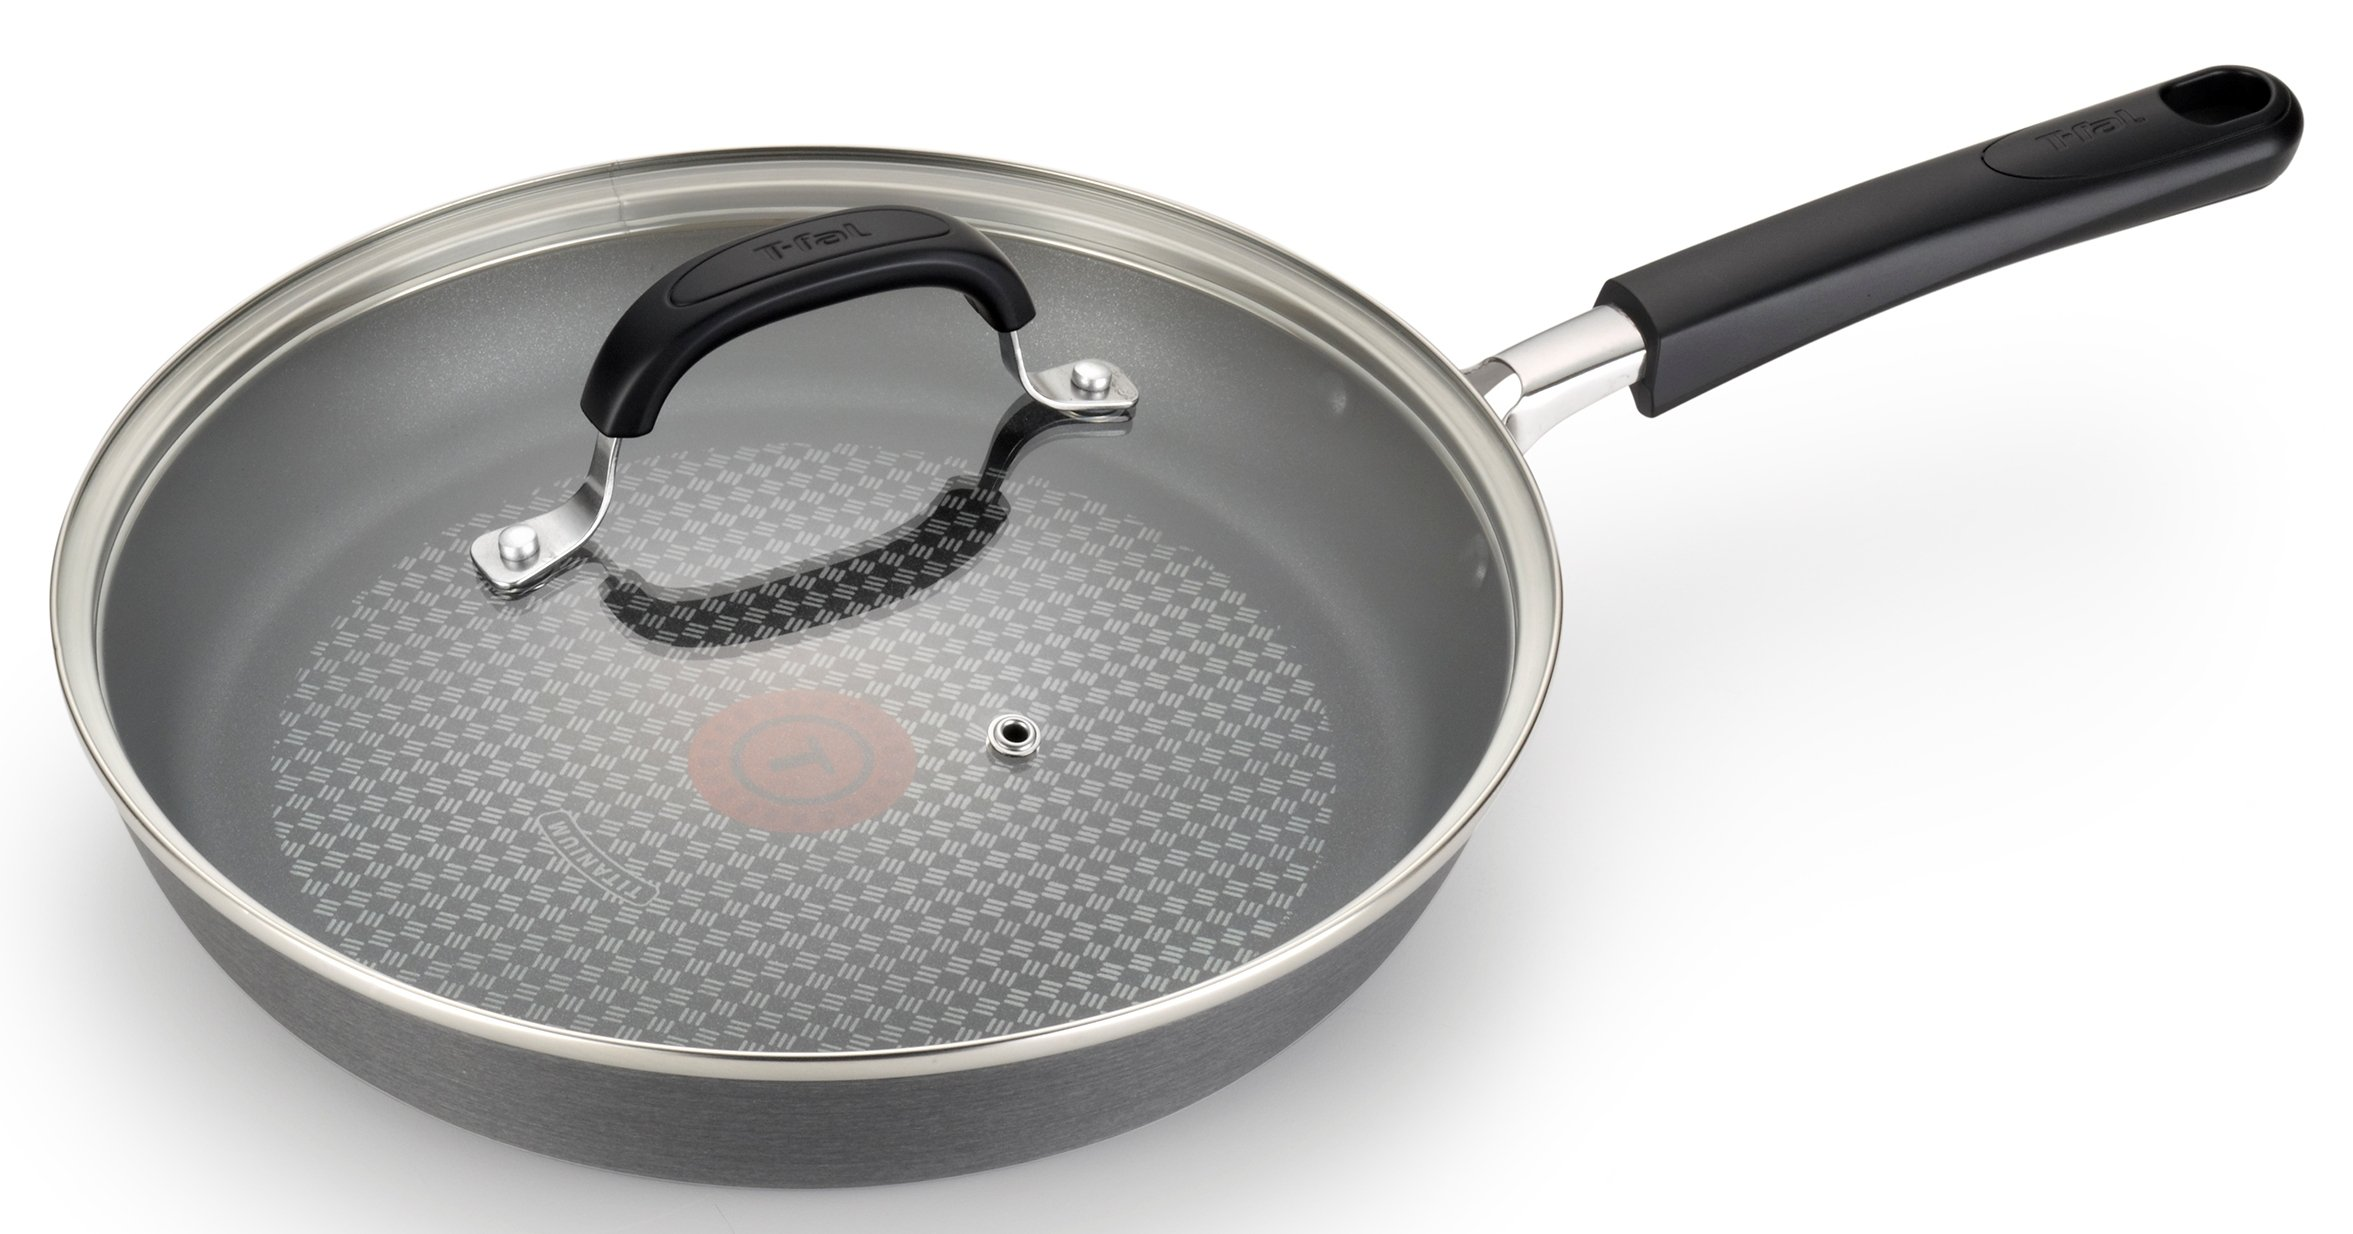 T-fal C037SC OptiCook Hard Anodized Thermo-Spot Scratch Resistant Titanium Nonstick Oven Safe PFOA Free Cookware Set, 12-Piece, Black by T-fal (Image #3)